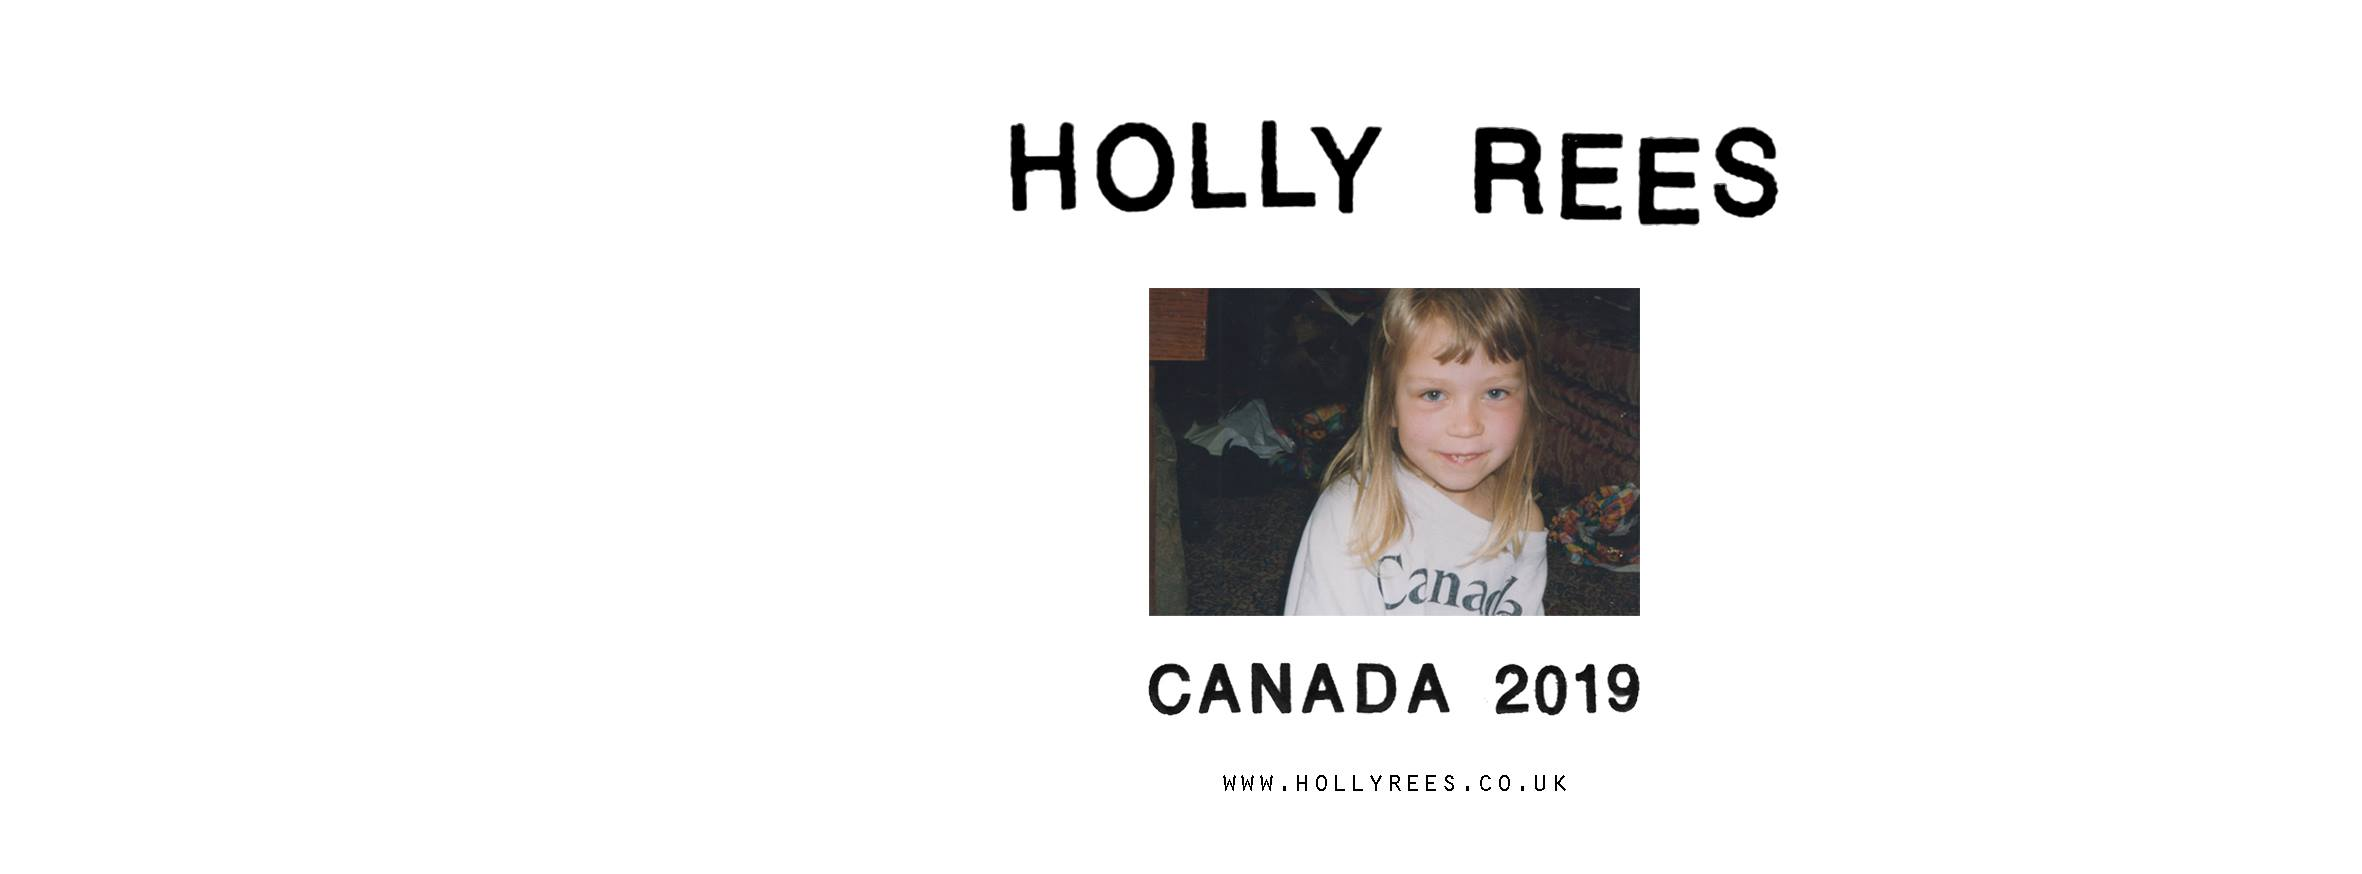 Holly Rees.jpg